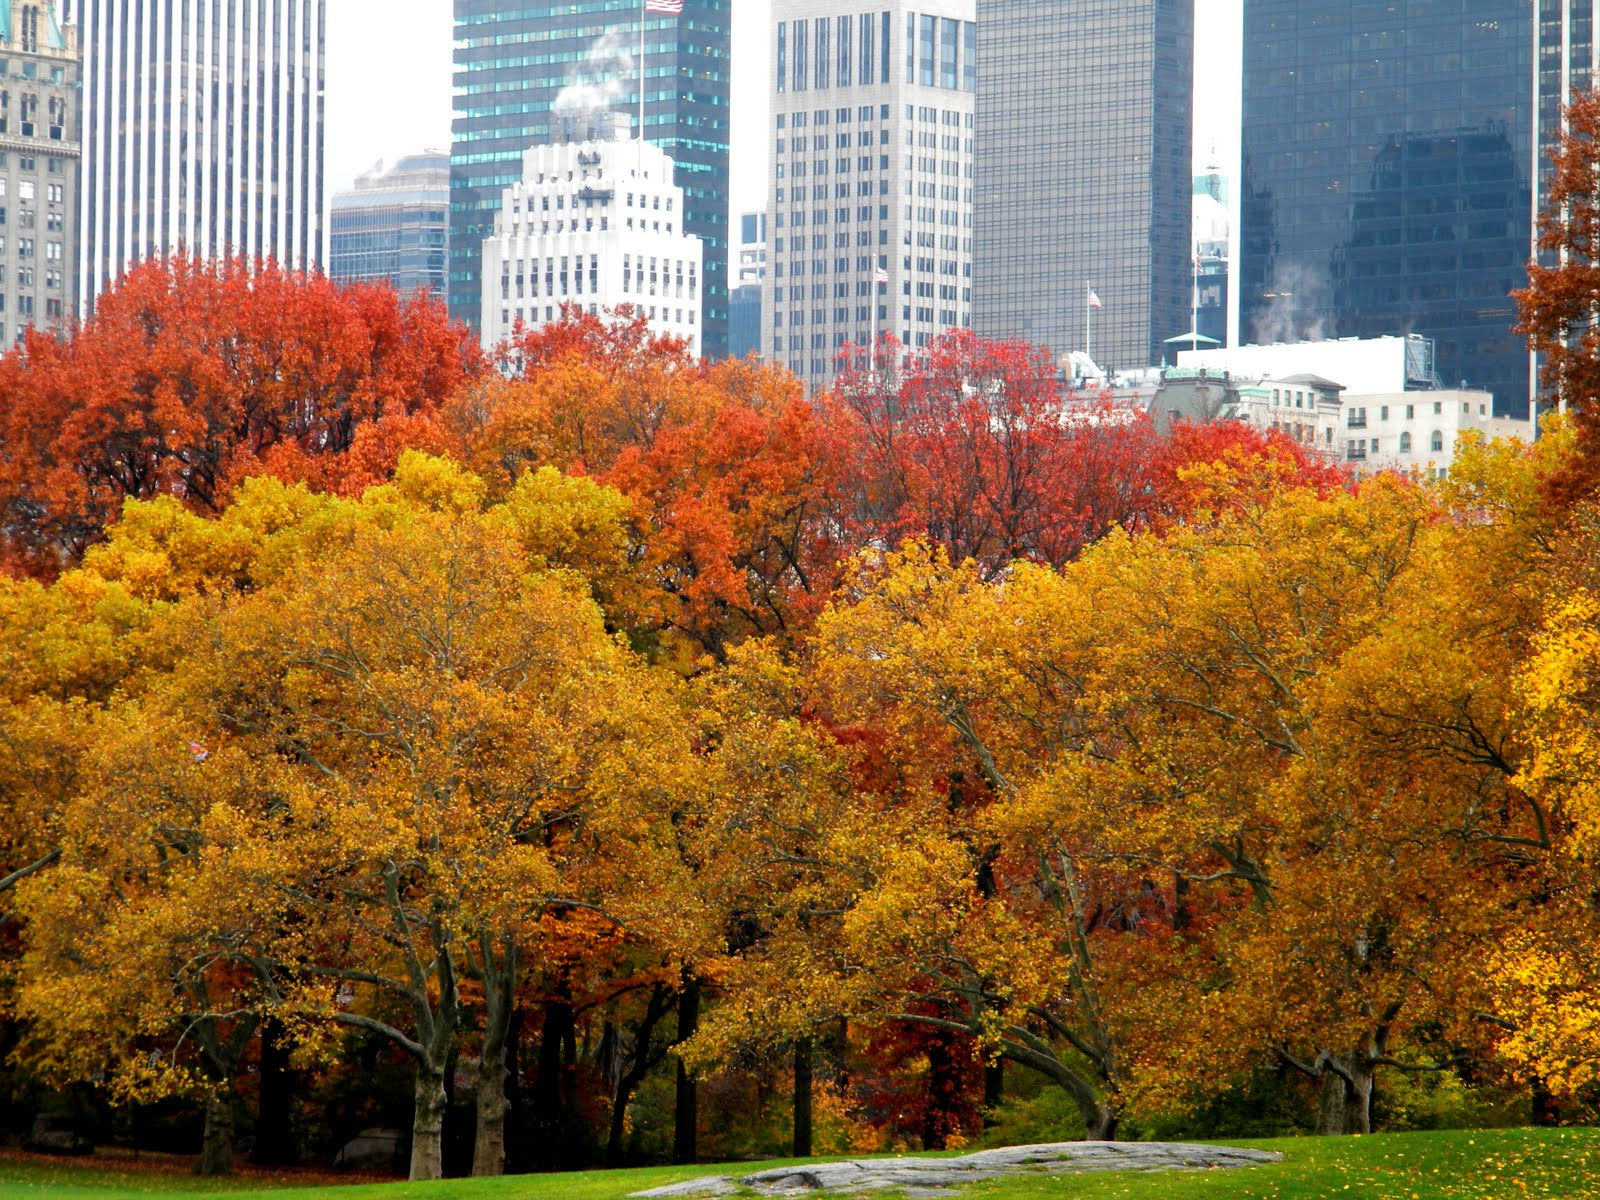 autumn in new york - photo #28